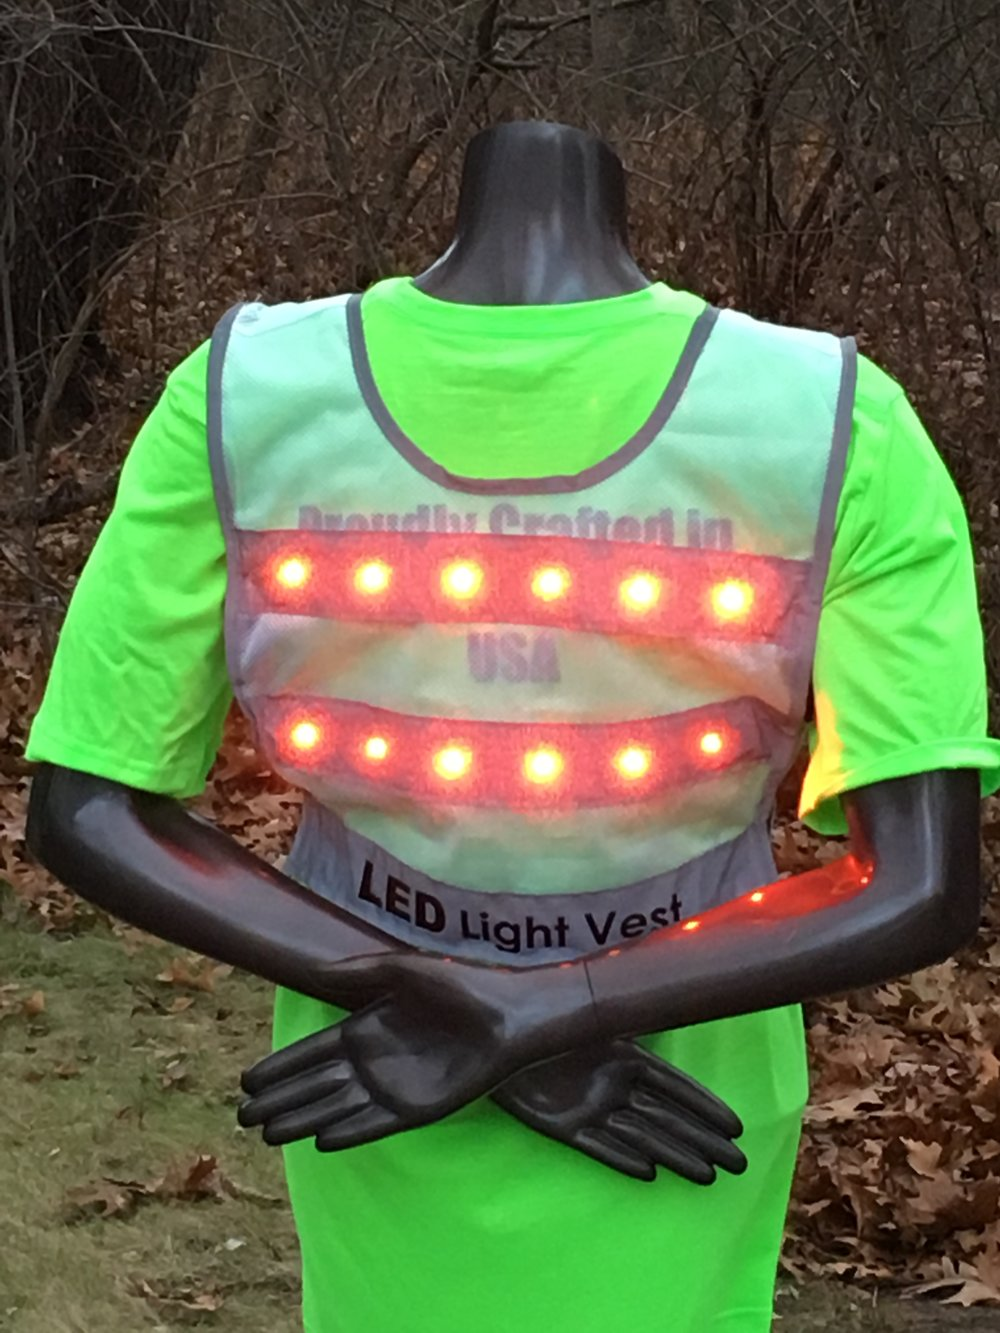 LEDLightvest-small-back-safety-vest-experts----Grand Rapids-MI.JPG